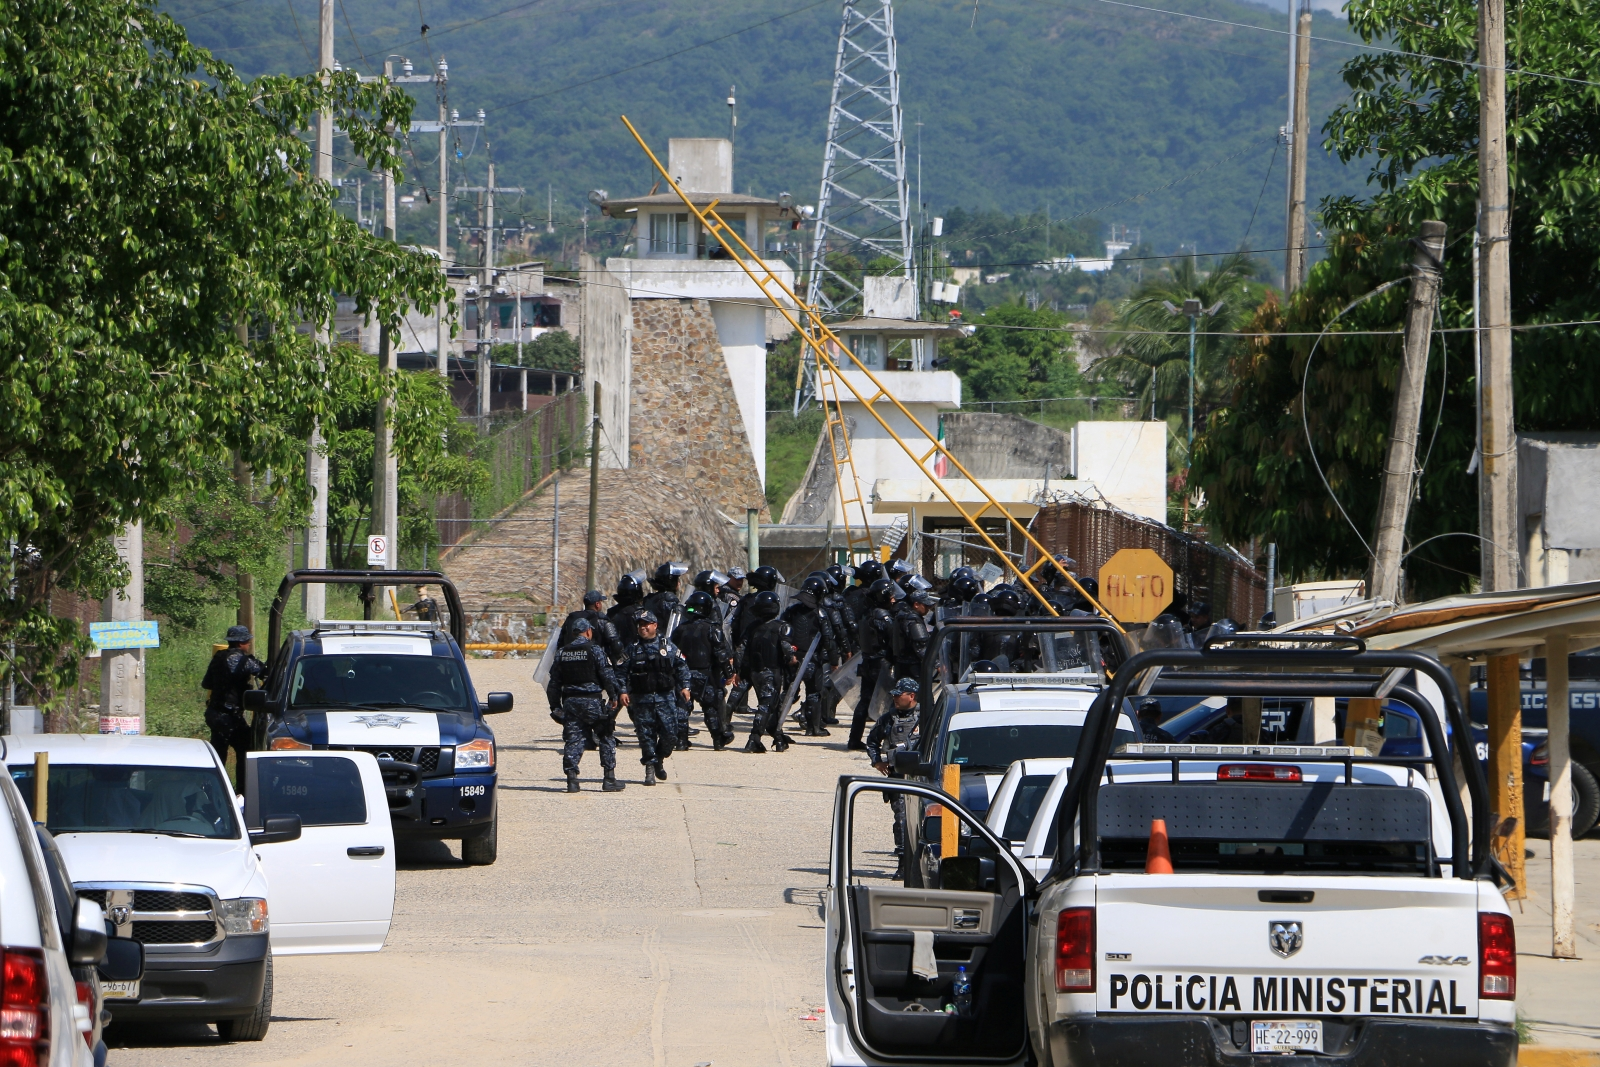 Dozens killed in brutal Mexico prison fight